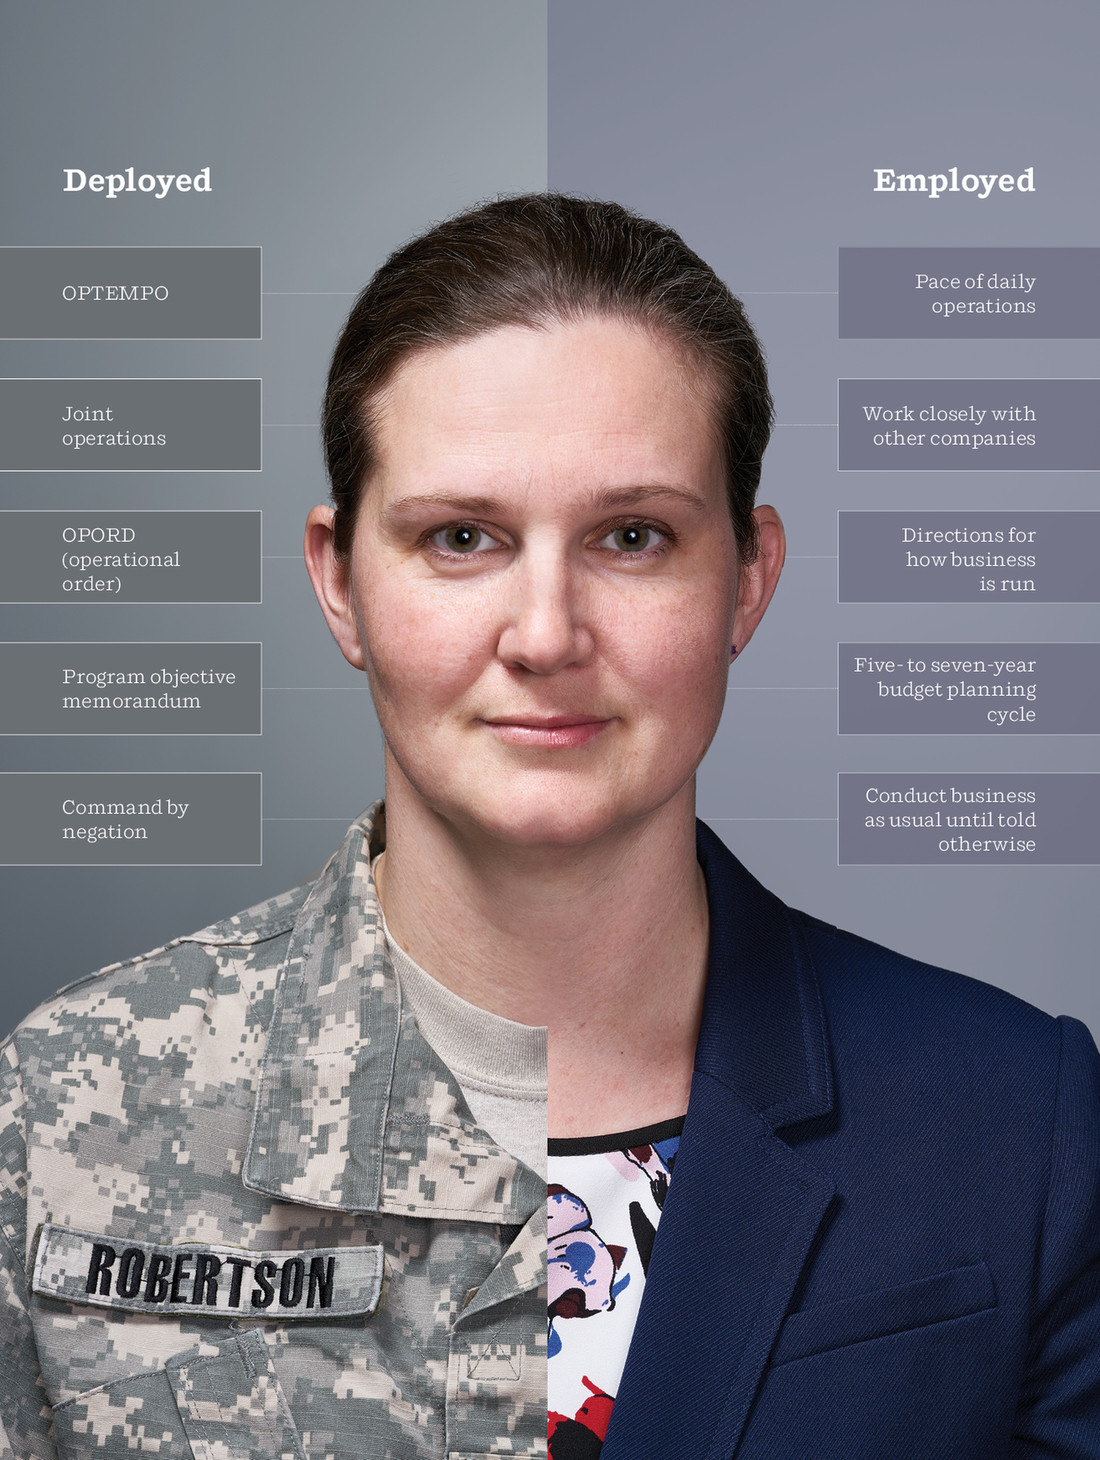 Image of student veteran Katie Robertson with military and business terms